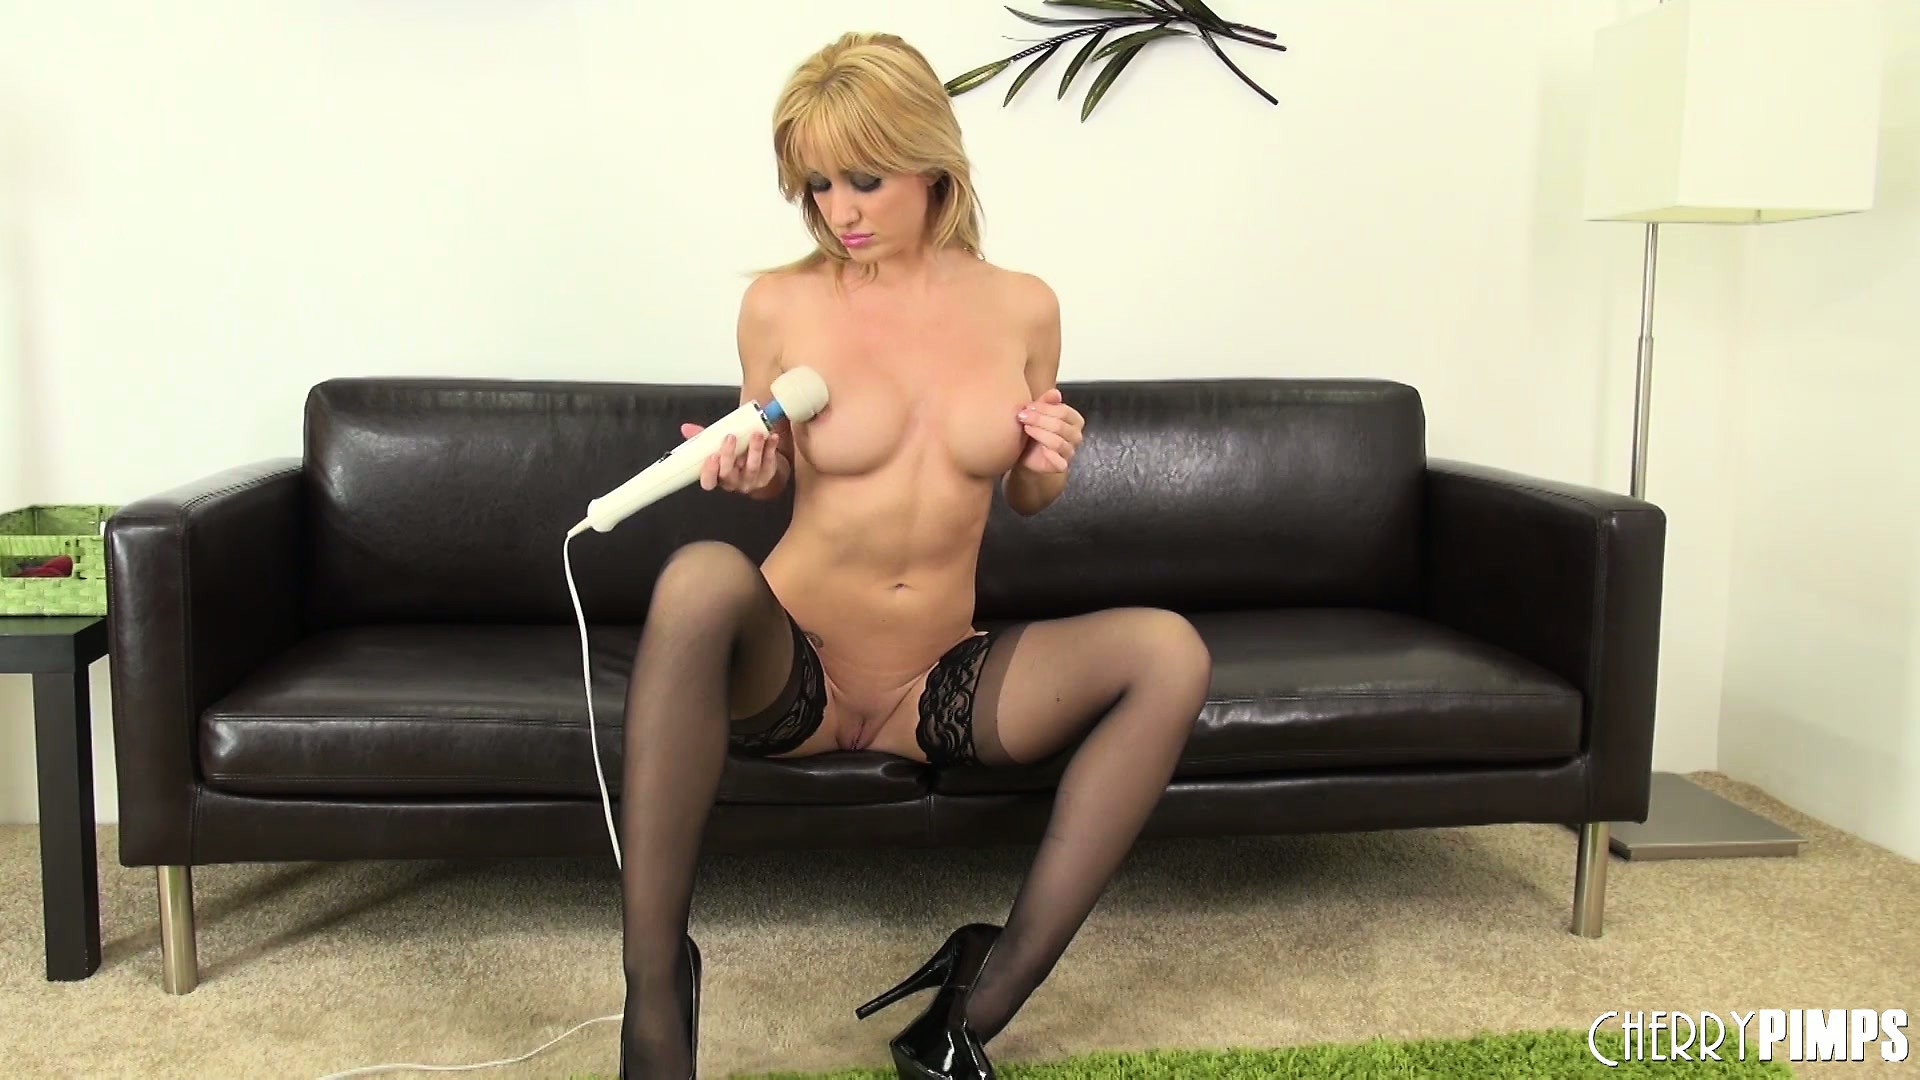 Porn Tube of Angela Shows Her Nice Tits And Gets Naked To Vibrate Her Clit